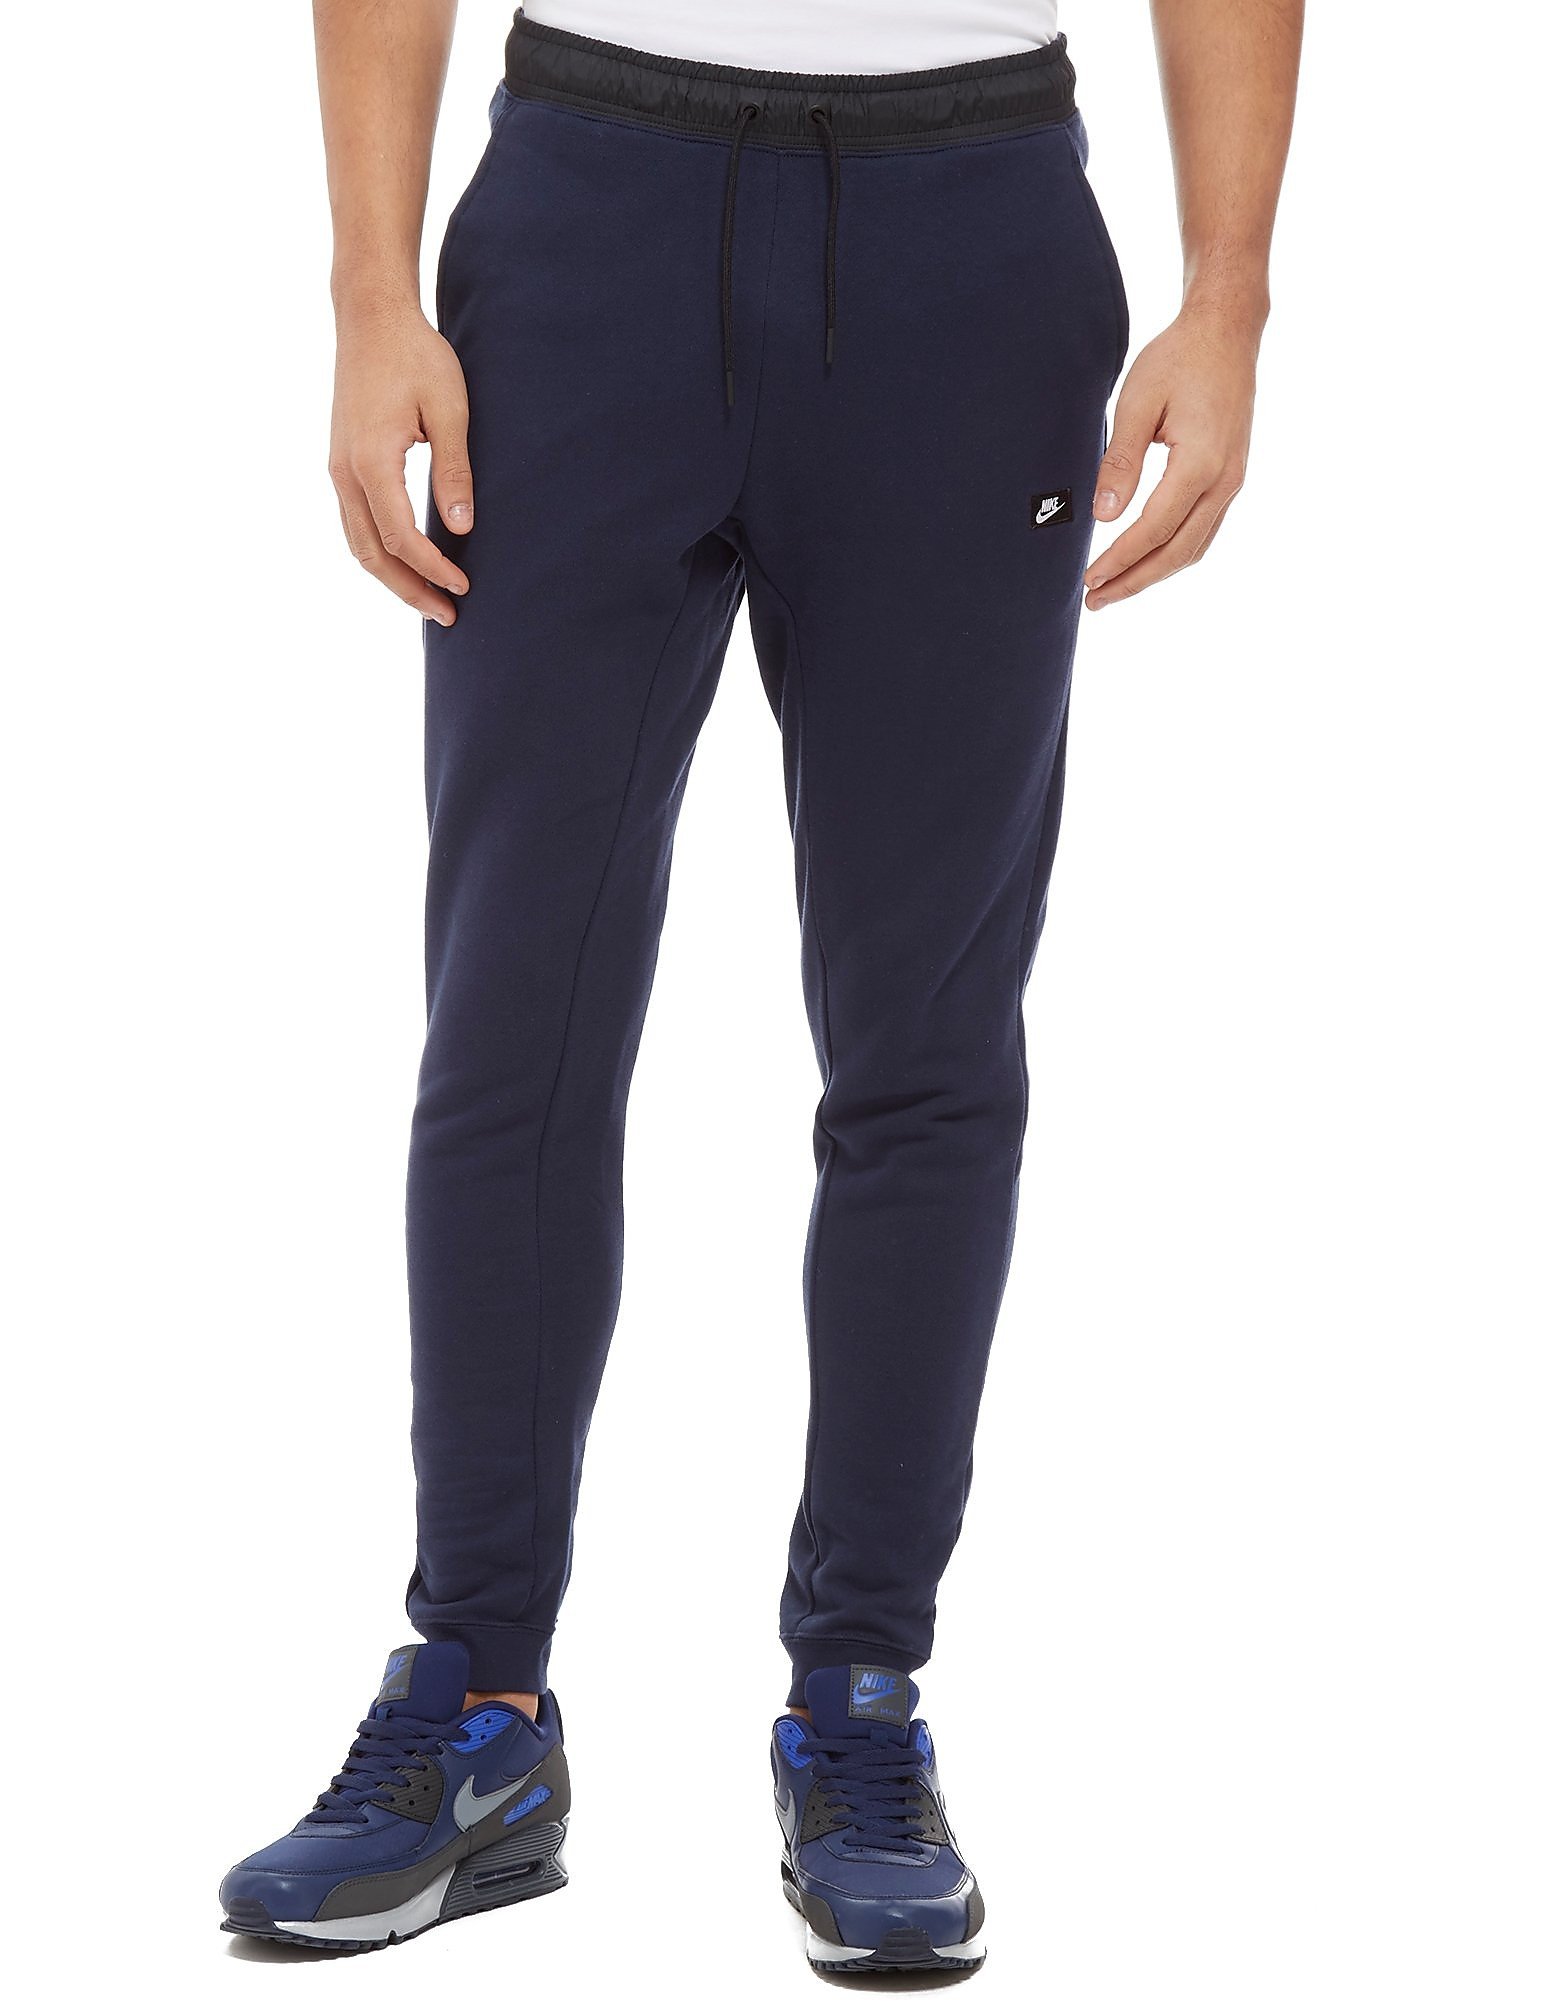 Nike Modern Essential Fleece Pants